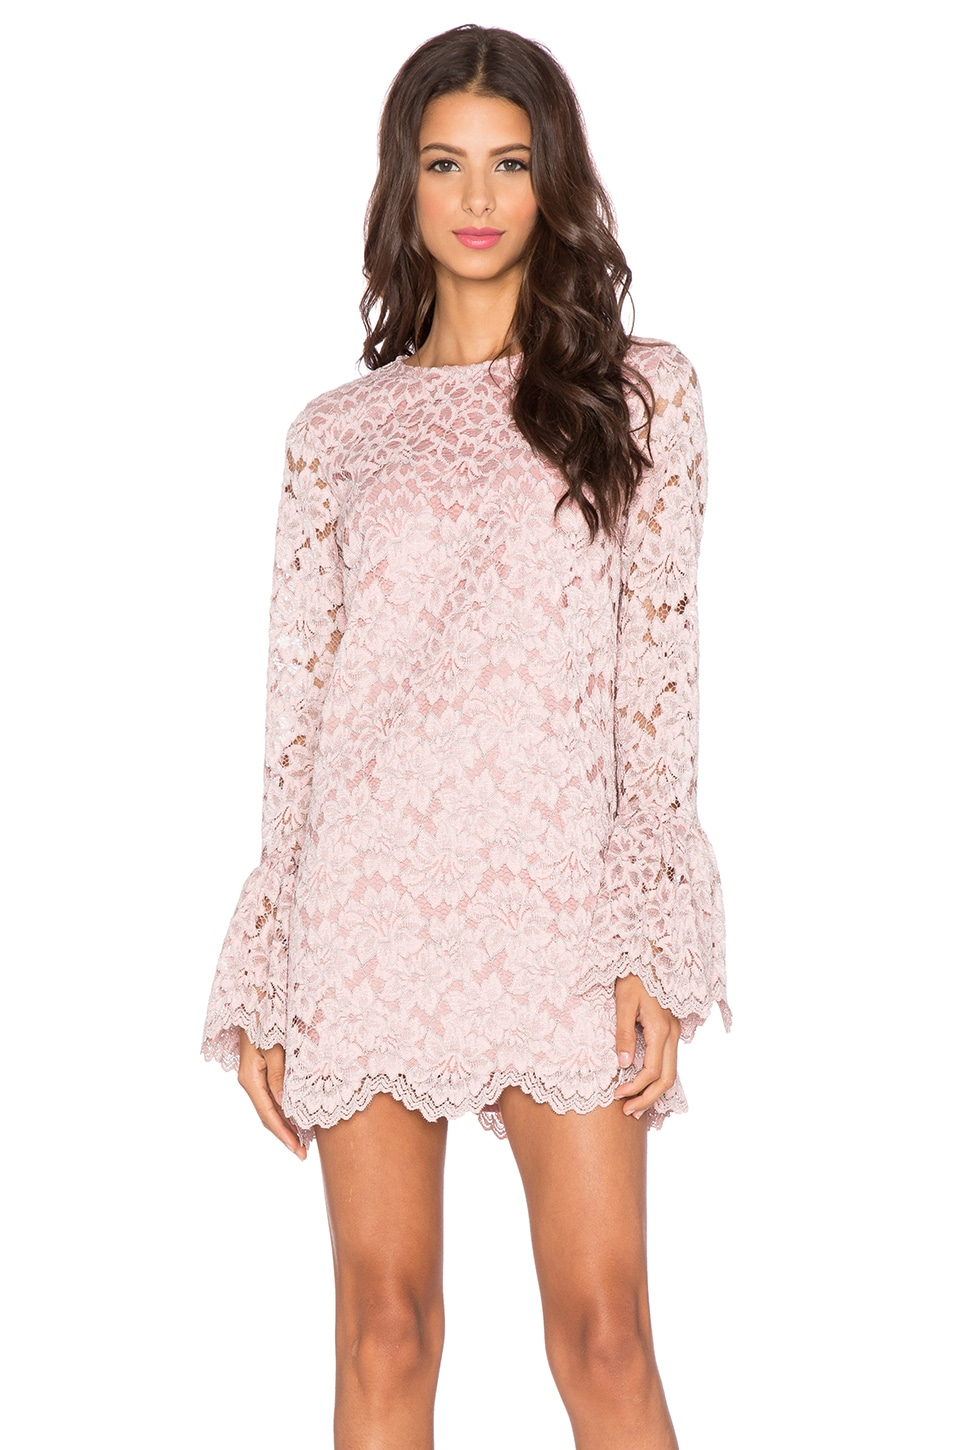 Alexis Rustam Lace Shift Dress in Pink Lace